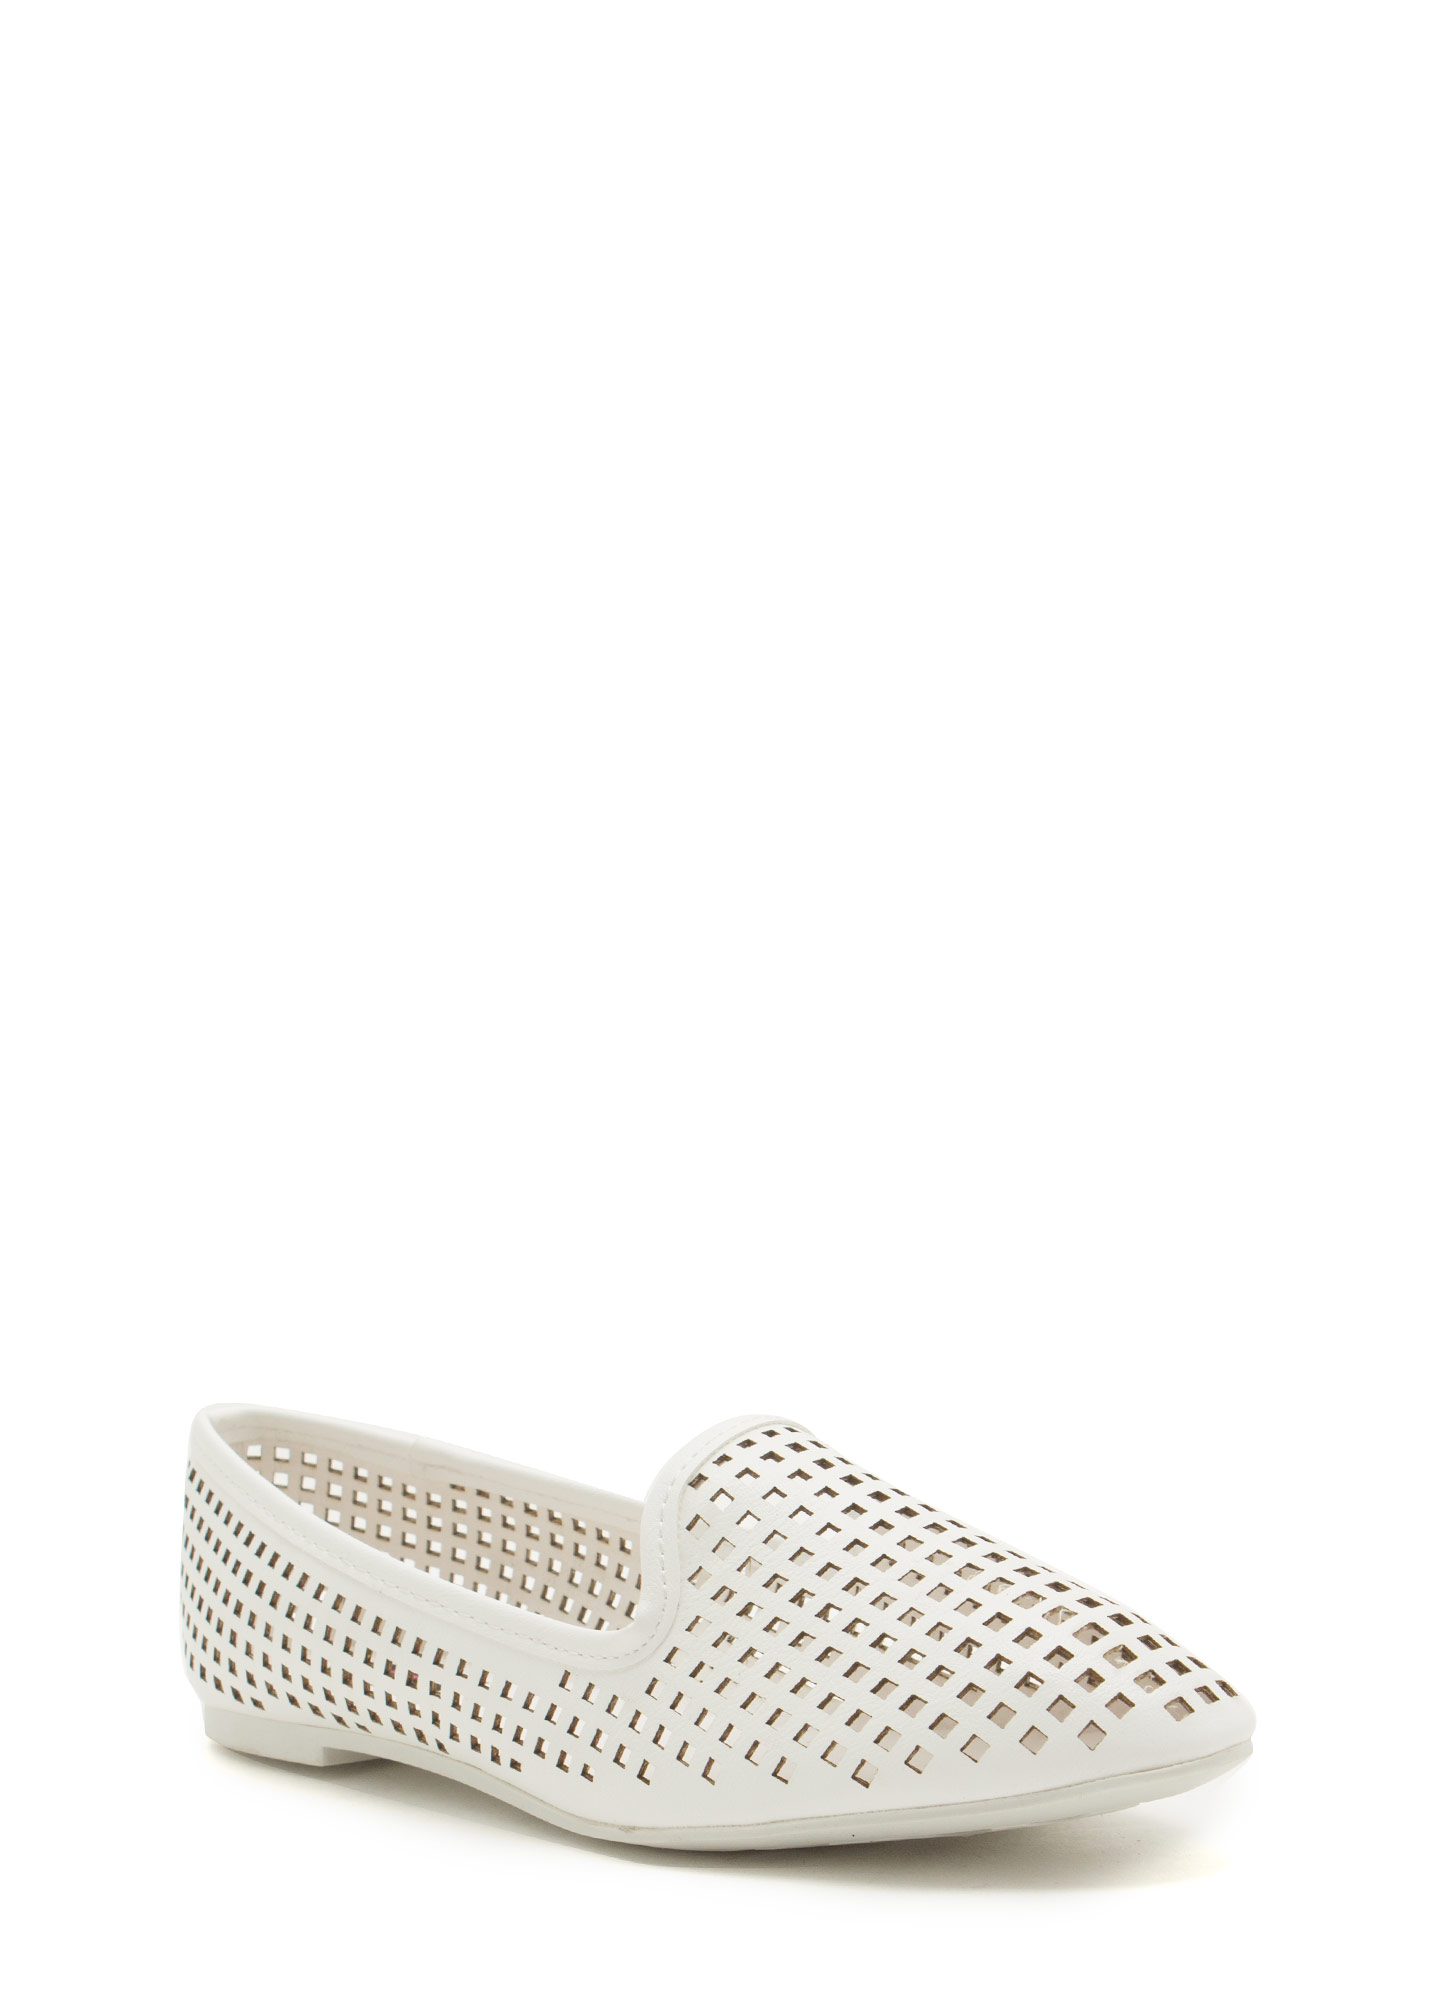 Per-forated Ten Smoking Flats WHITE